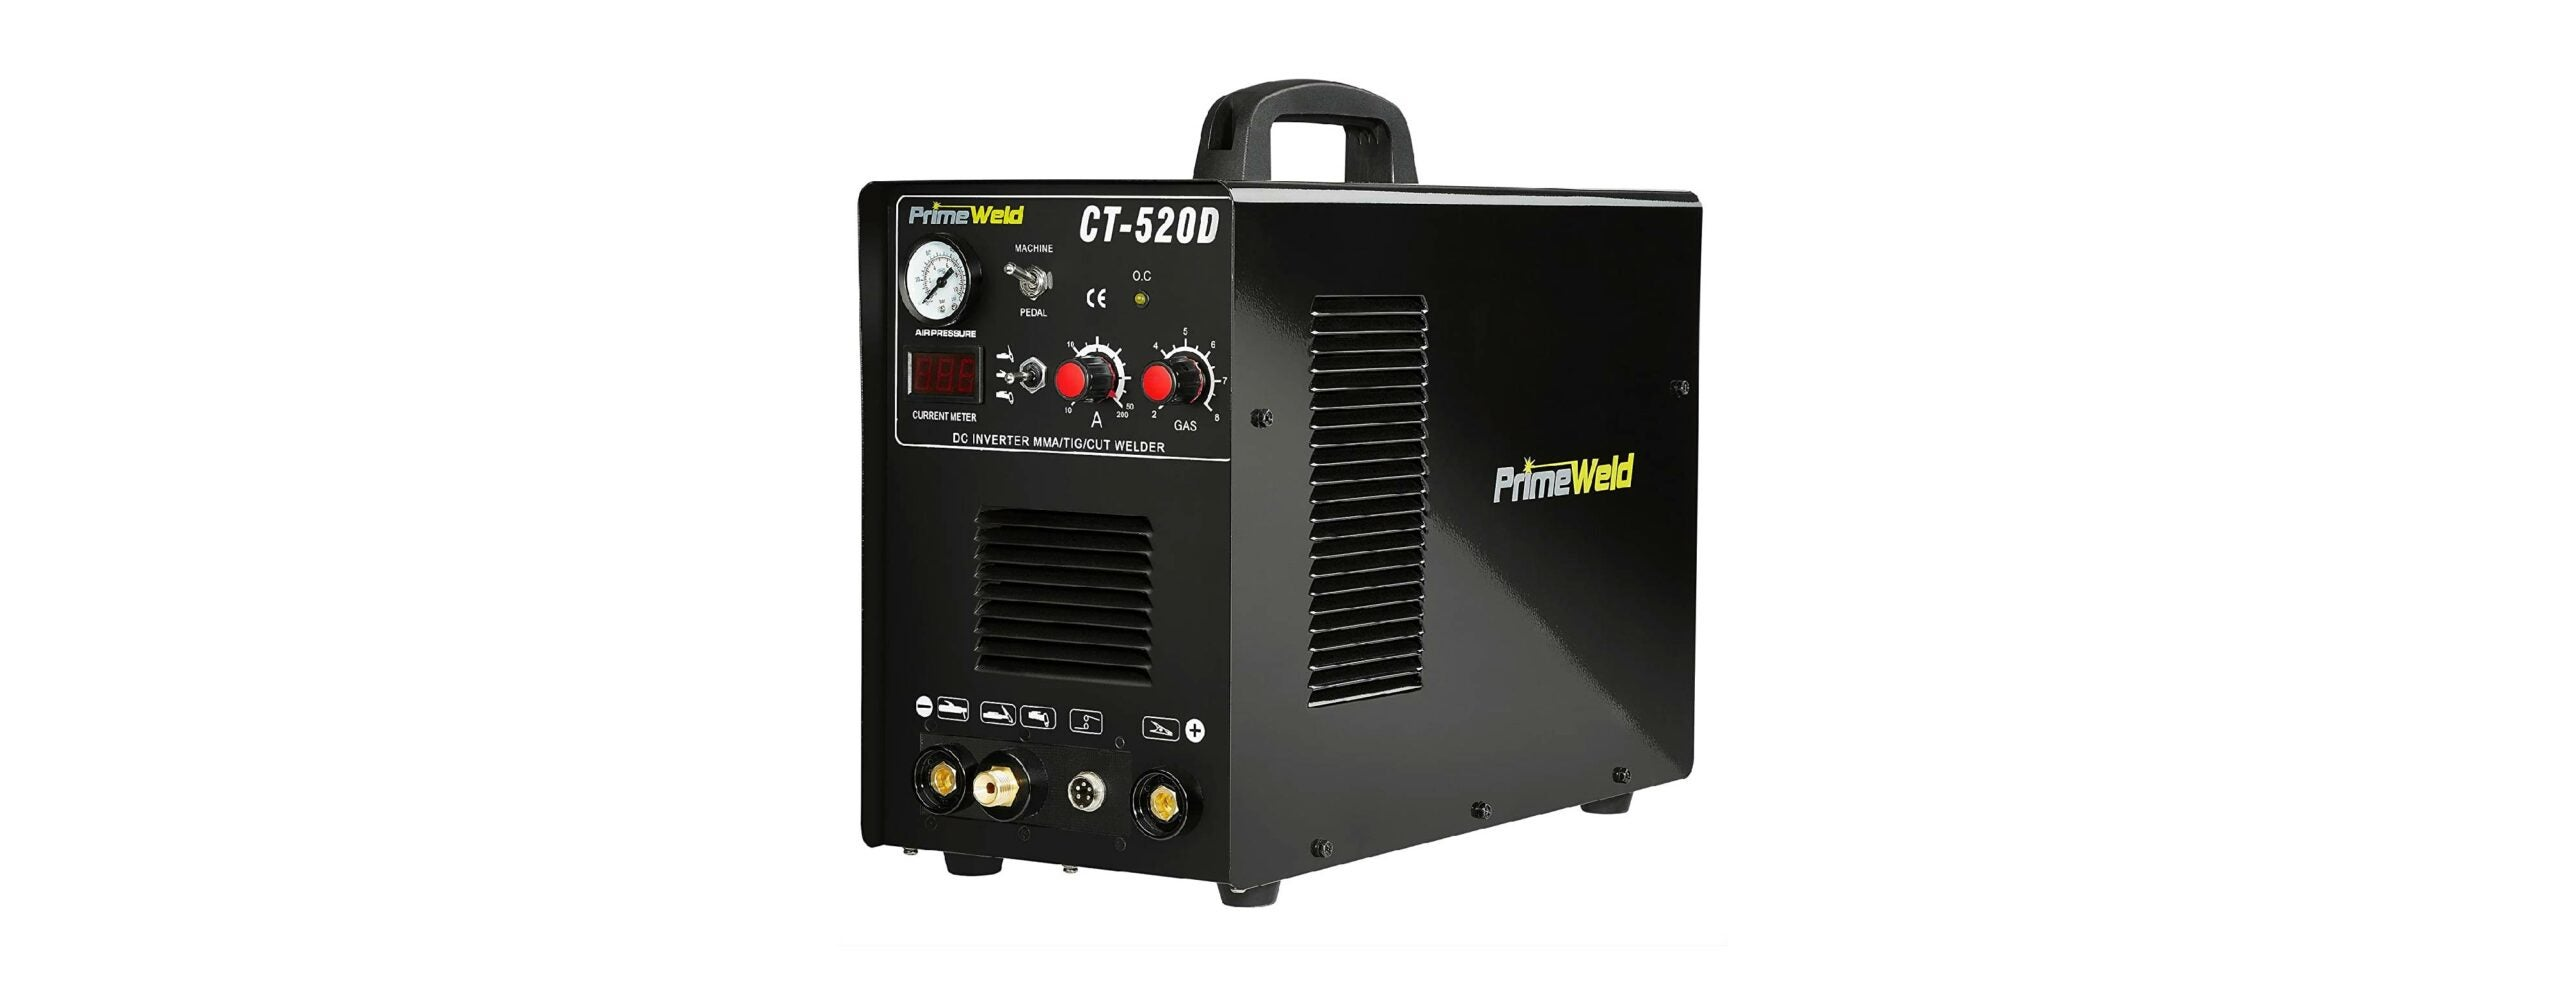 The Best TIG Welders (Review & Buying Guide) in 2021